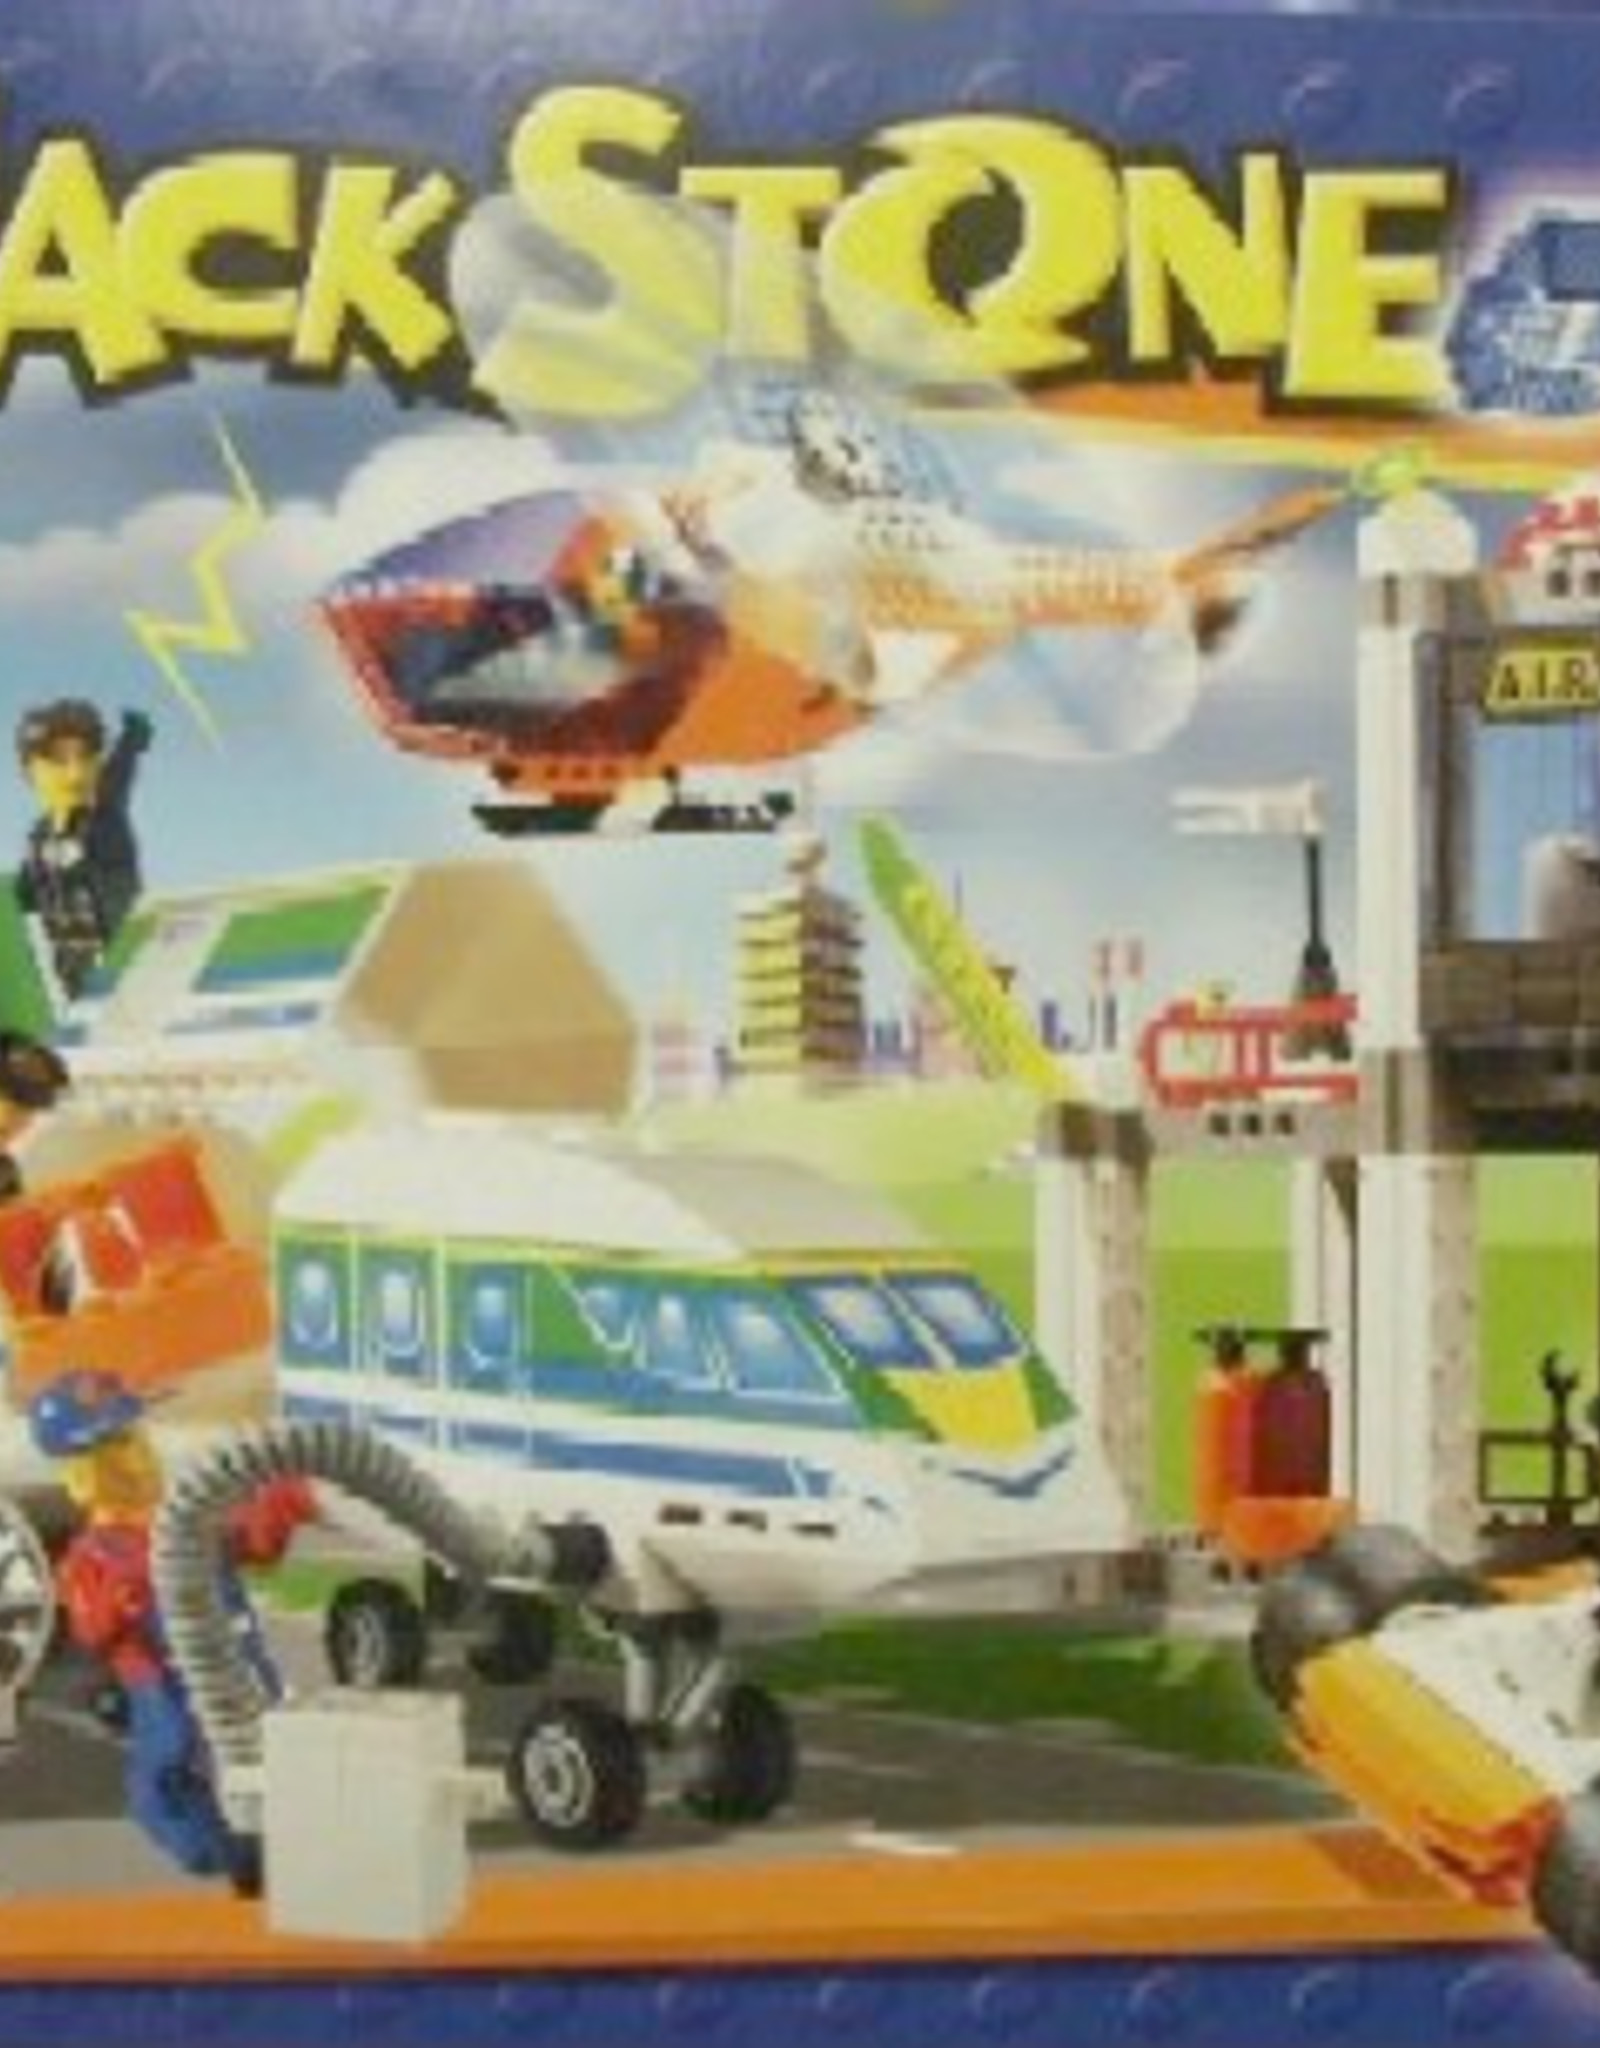 LEGO LEGO 4620 A.I.R. Operation HQ JACK STONE